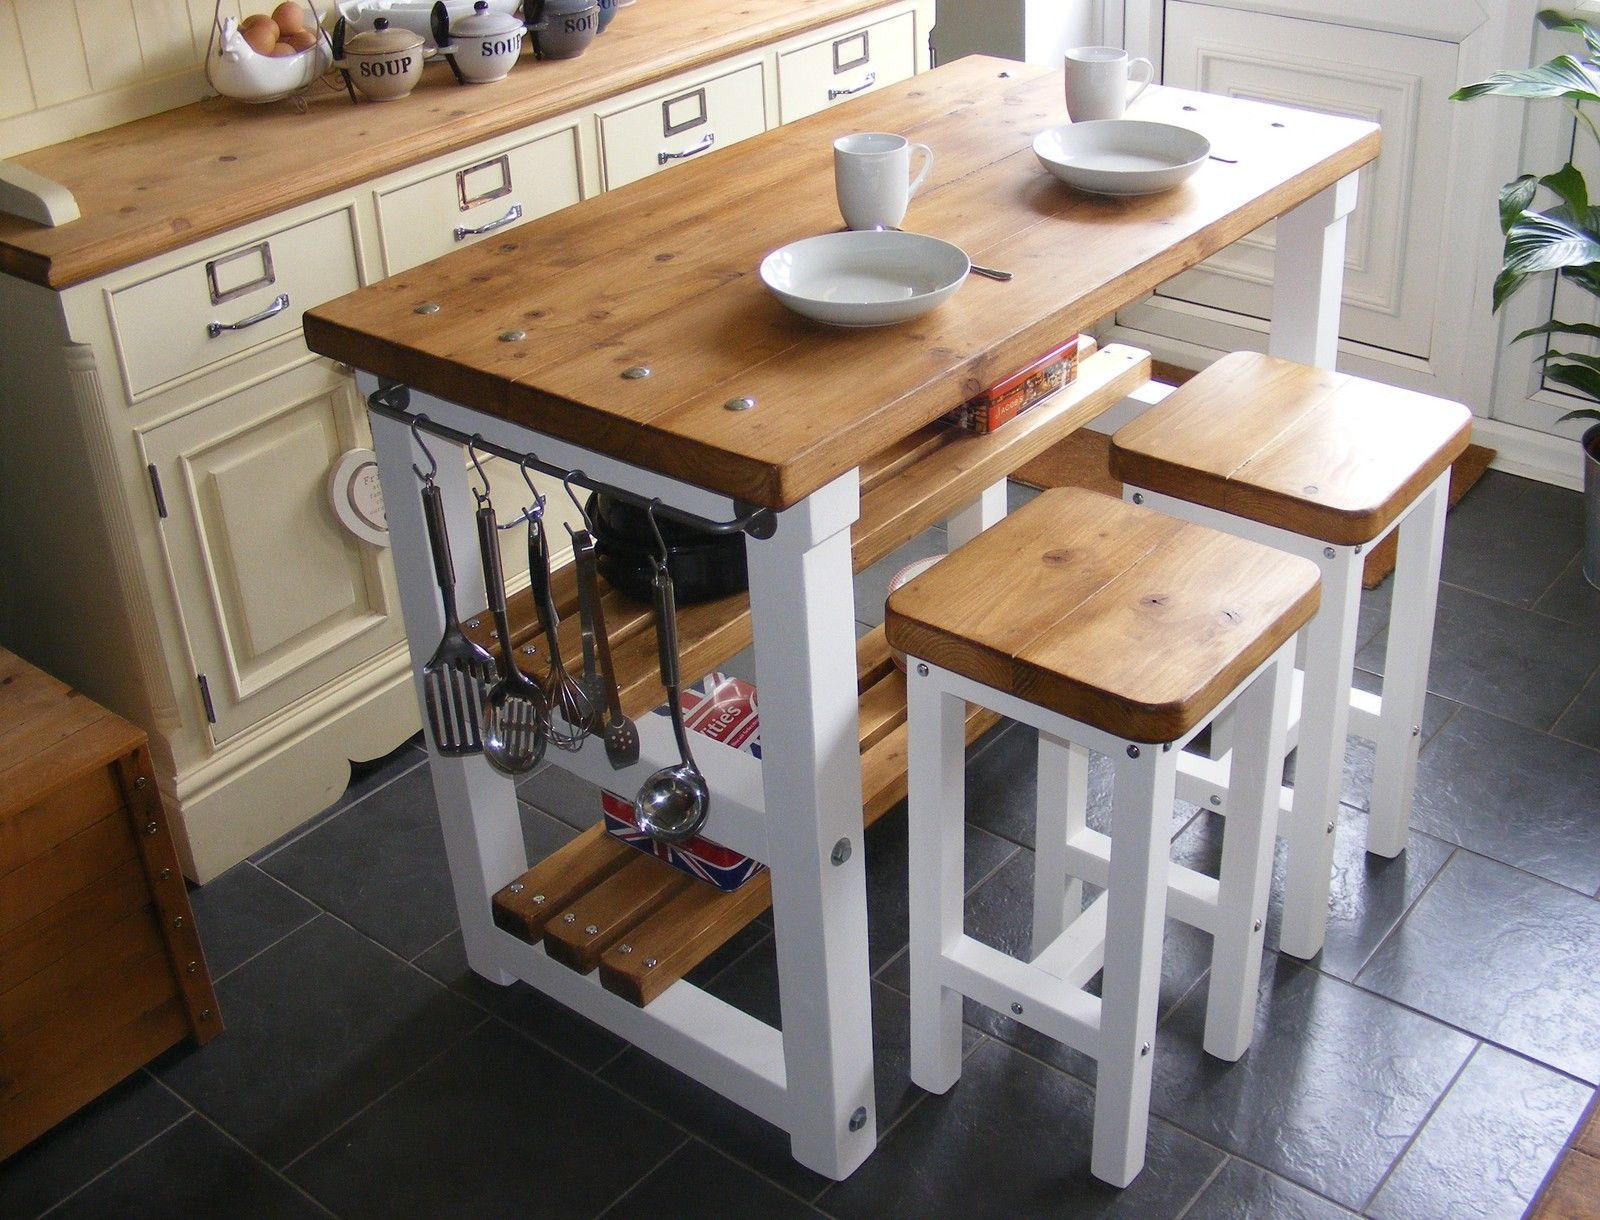 Rustic Kitchen Island Breakfast Bar Work Bench Butchers Block With 2 Stools Stools For Kitchen Island Rustic Kitchen Island Butcher Block Island Kitchen